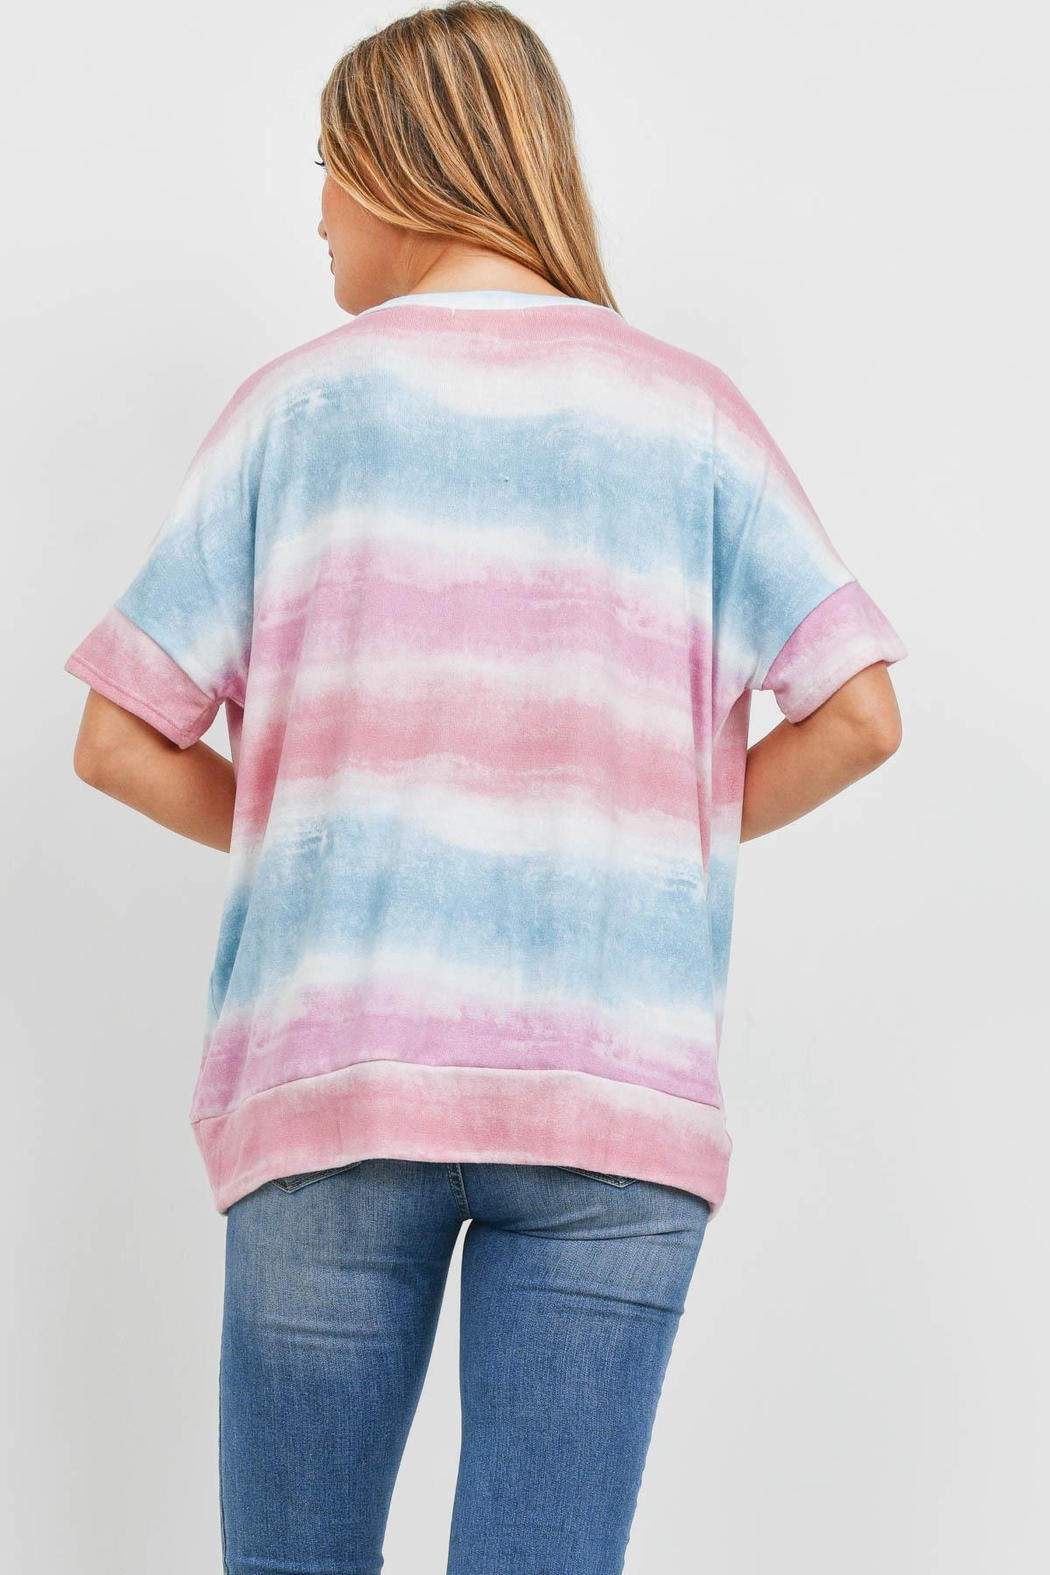 Riah Fashion V-Neck Tie Dye Twist Front Top - Front Full Image